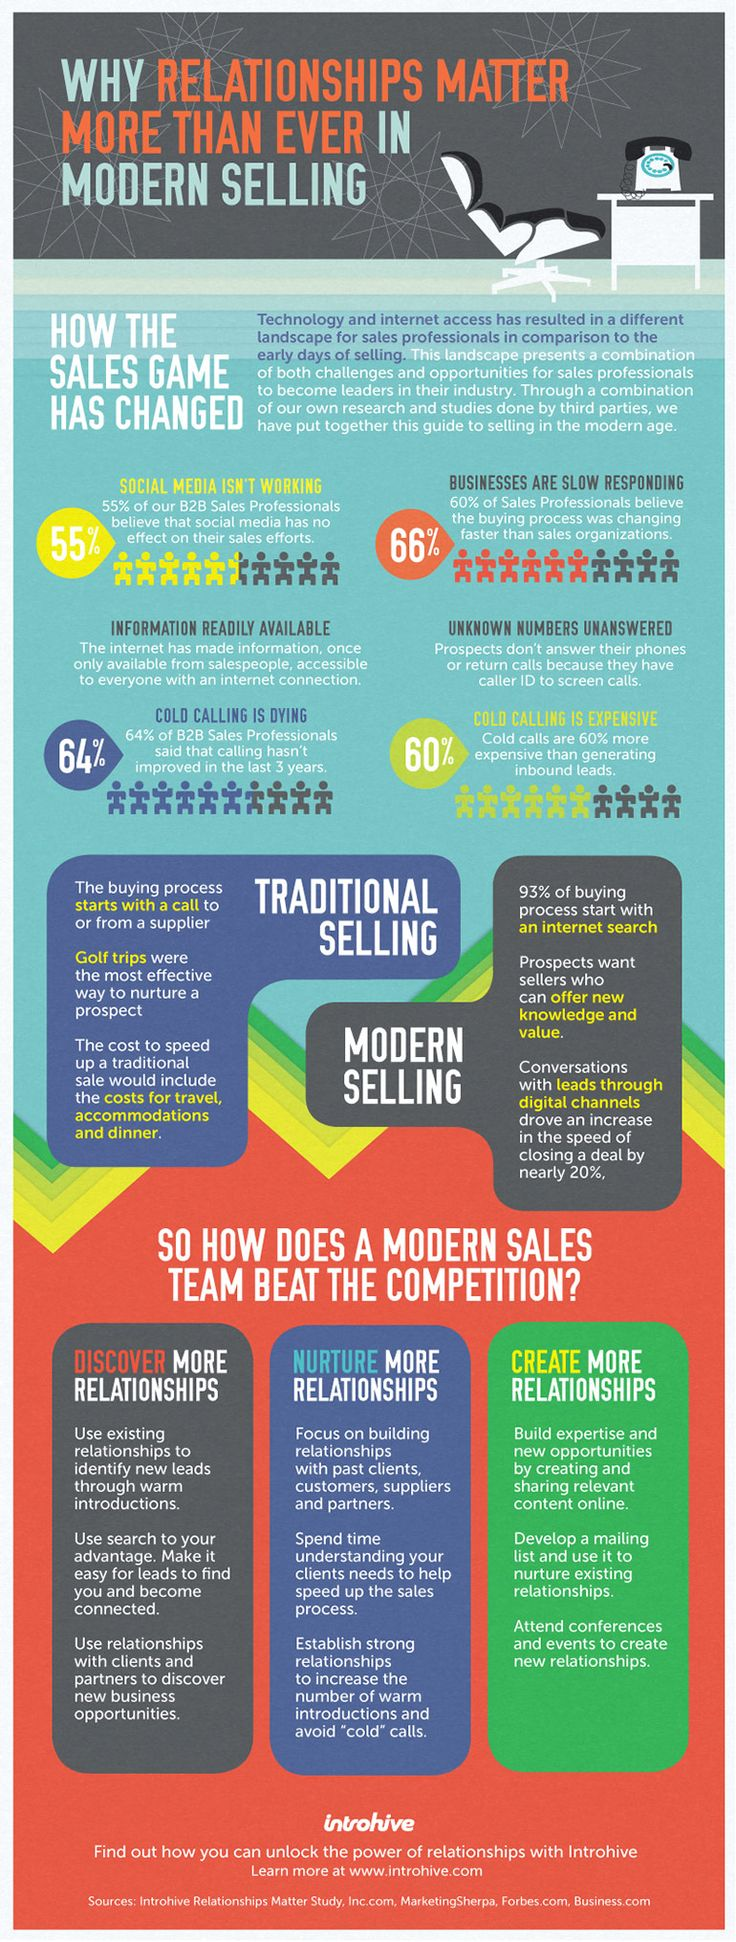 Why Relationships Matter More Than Ever in Modern Selling